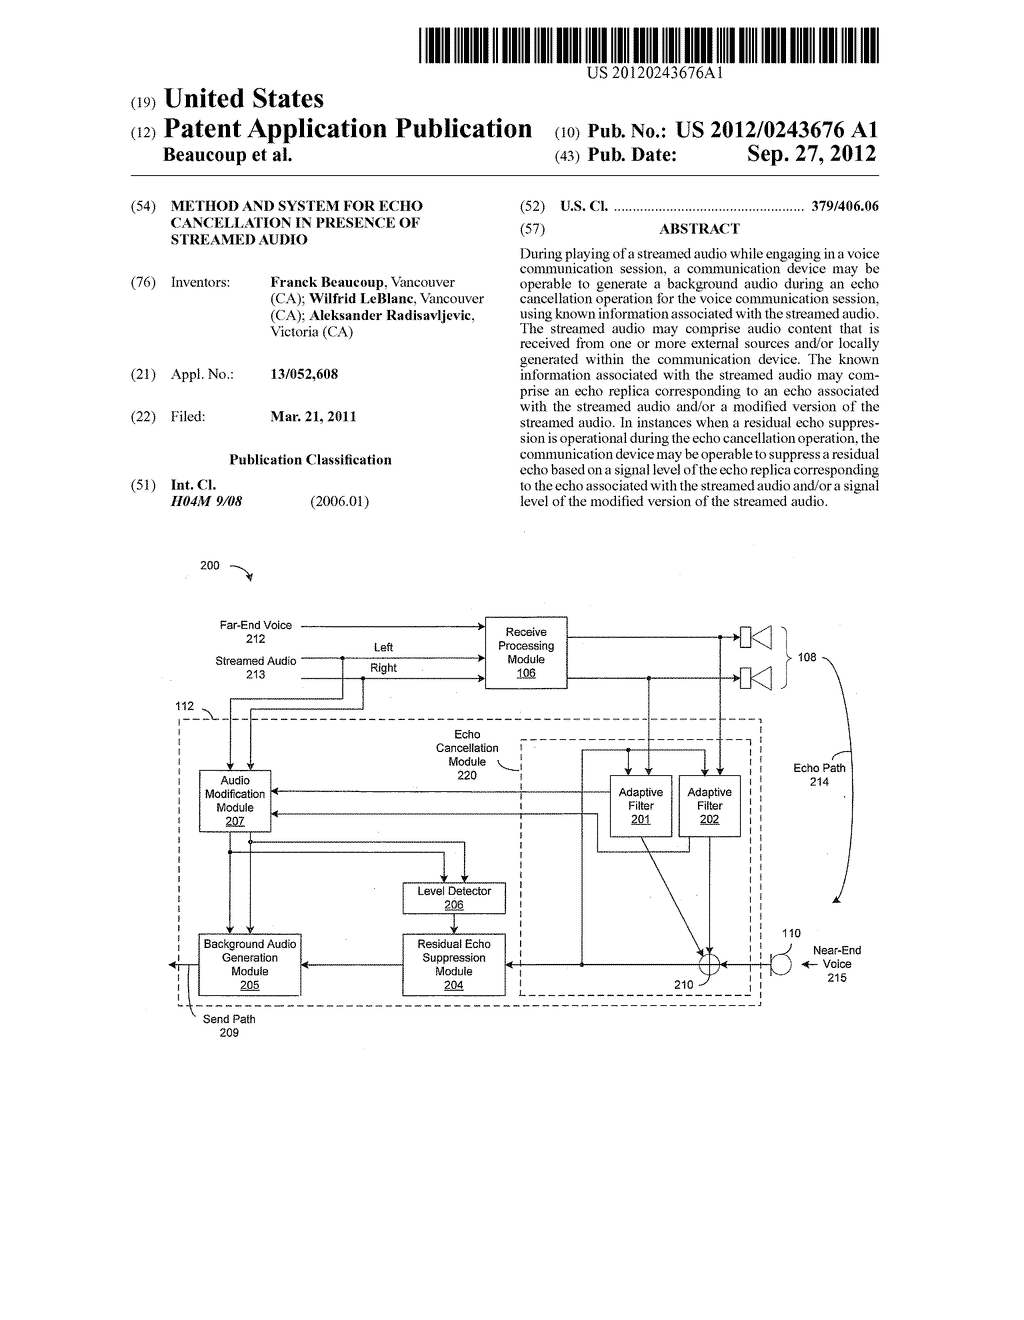 Method and System for Echo Cancellation in Presence of Streamed Audio - diagram, schematic, and image 01